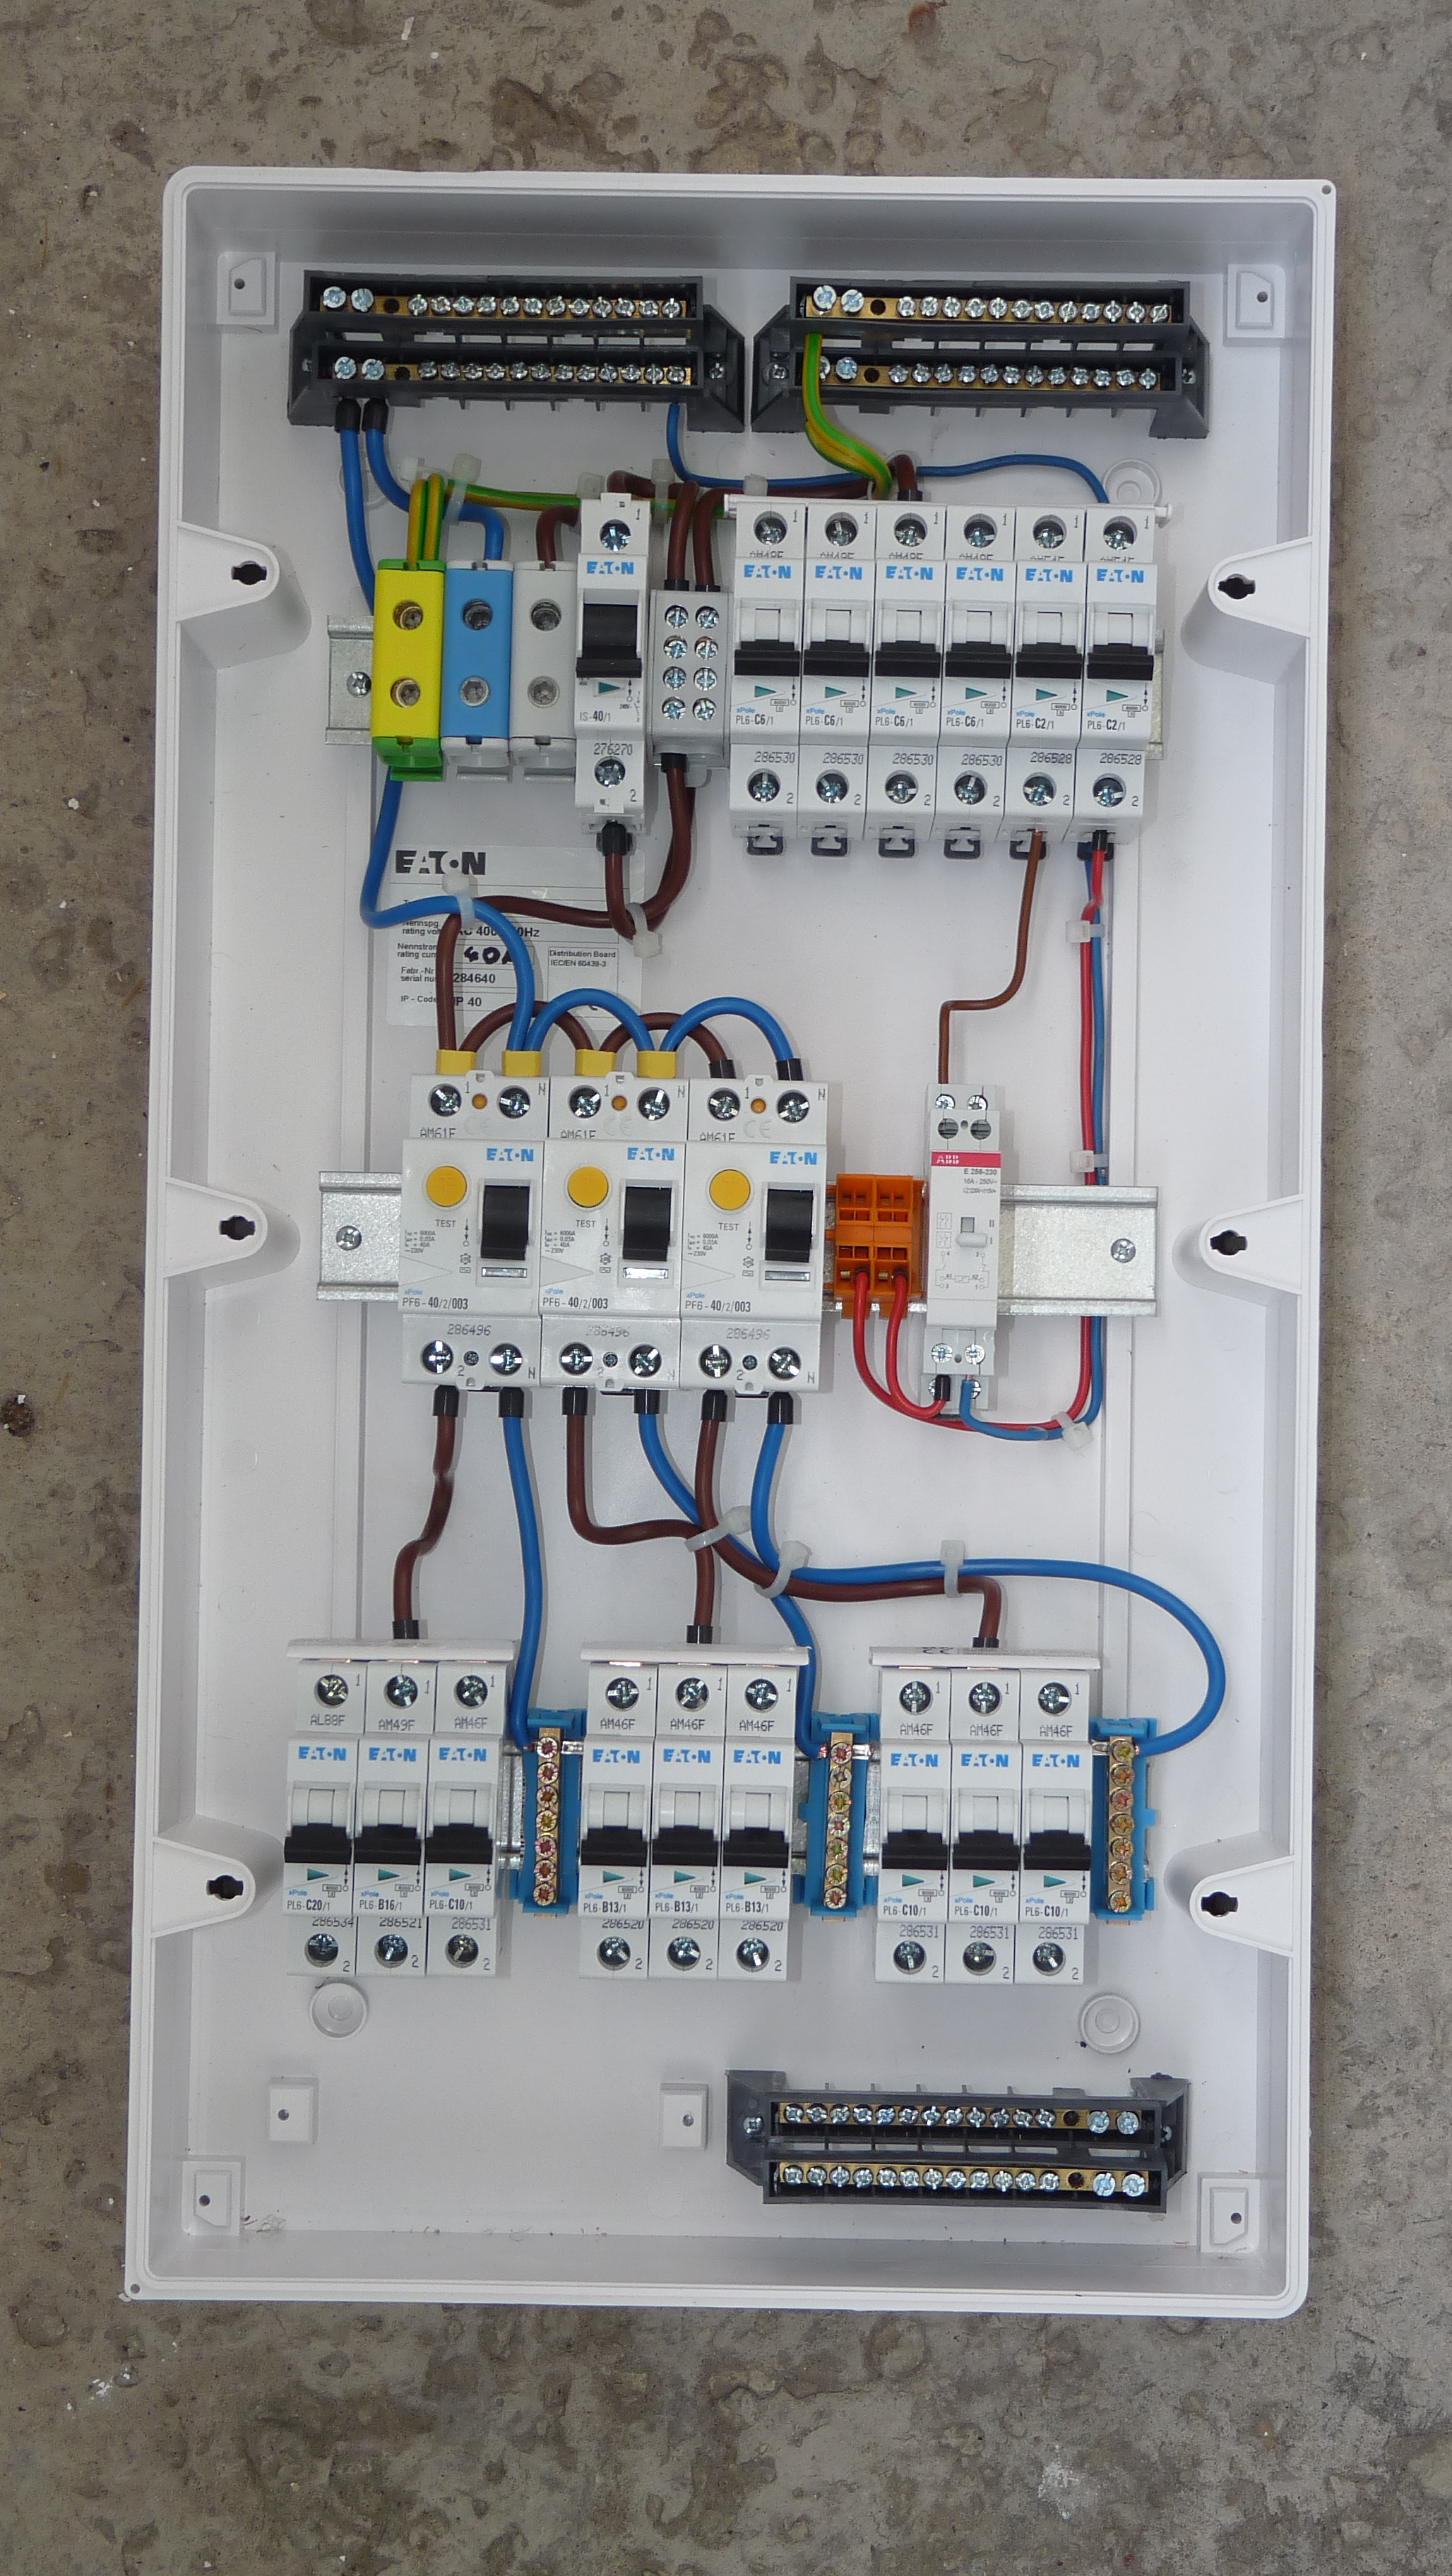 House Fuse Box Wiring Diagrams Cctv For Home Schematic Data